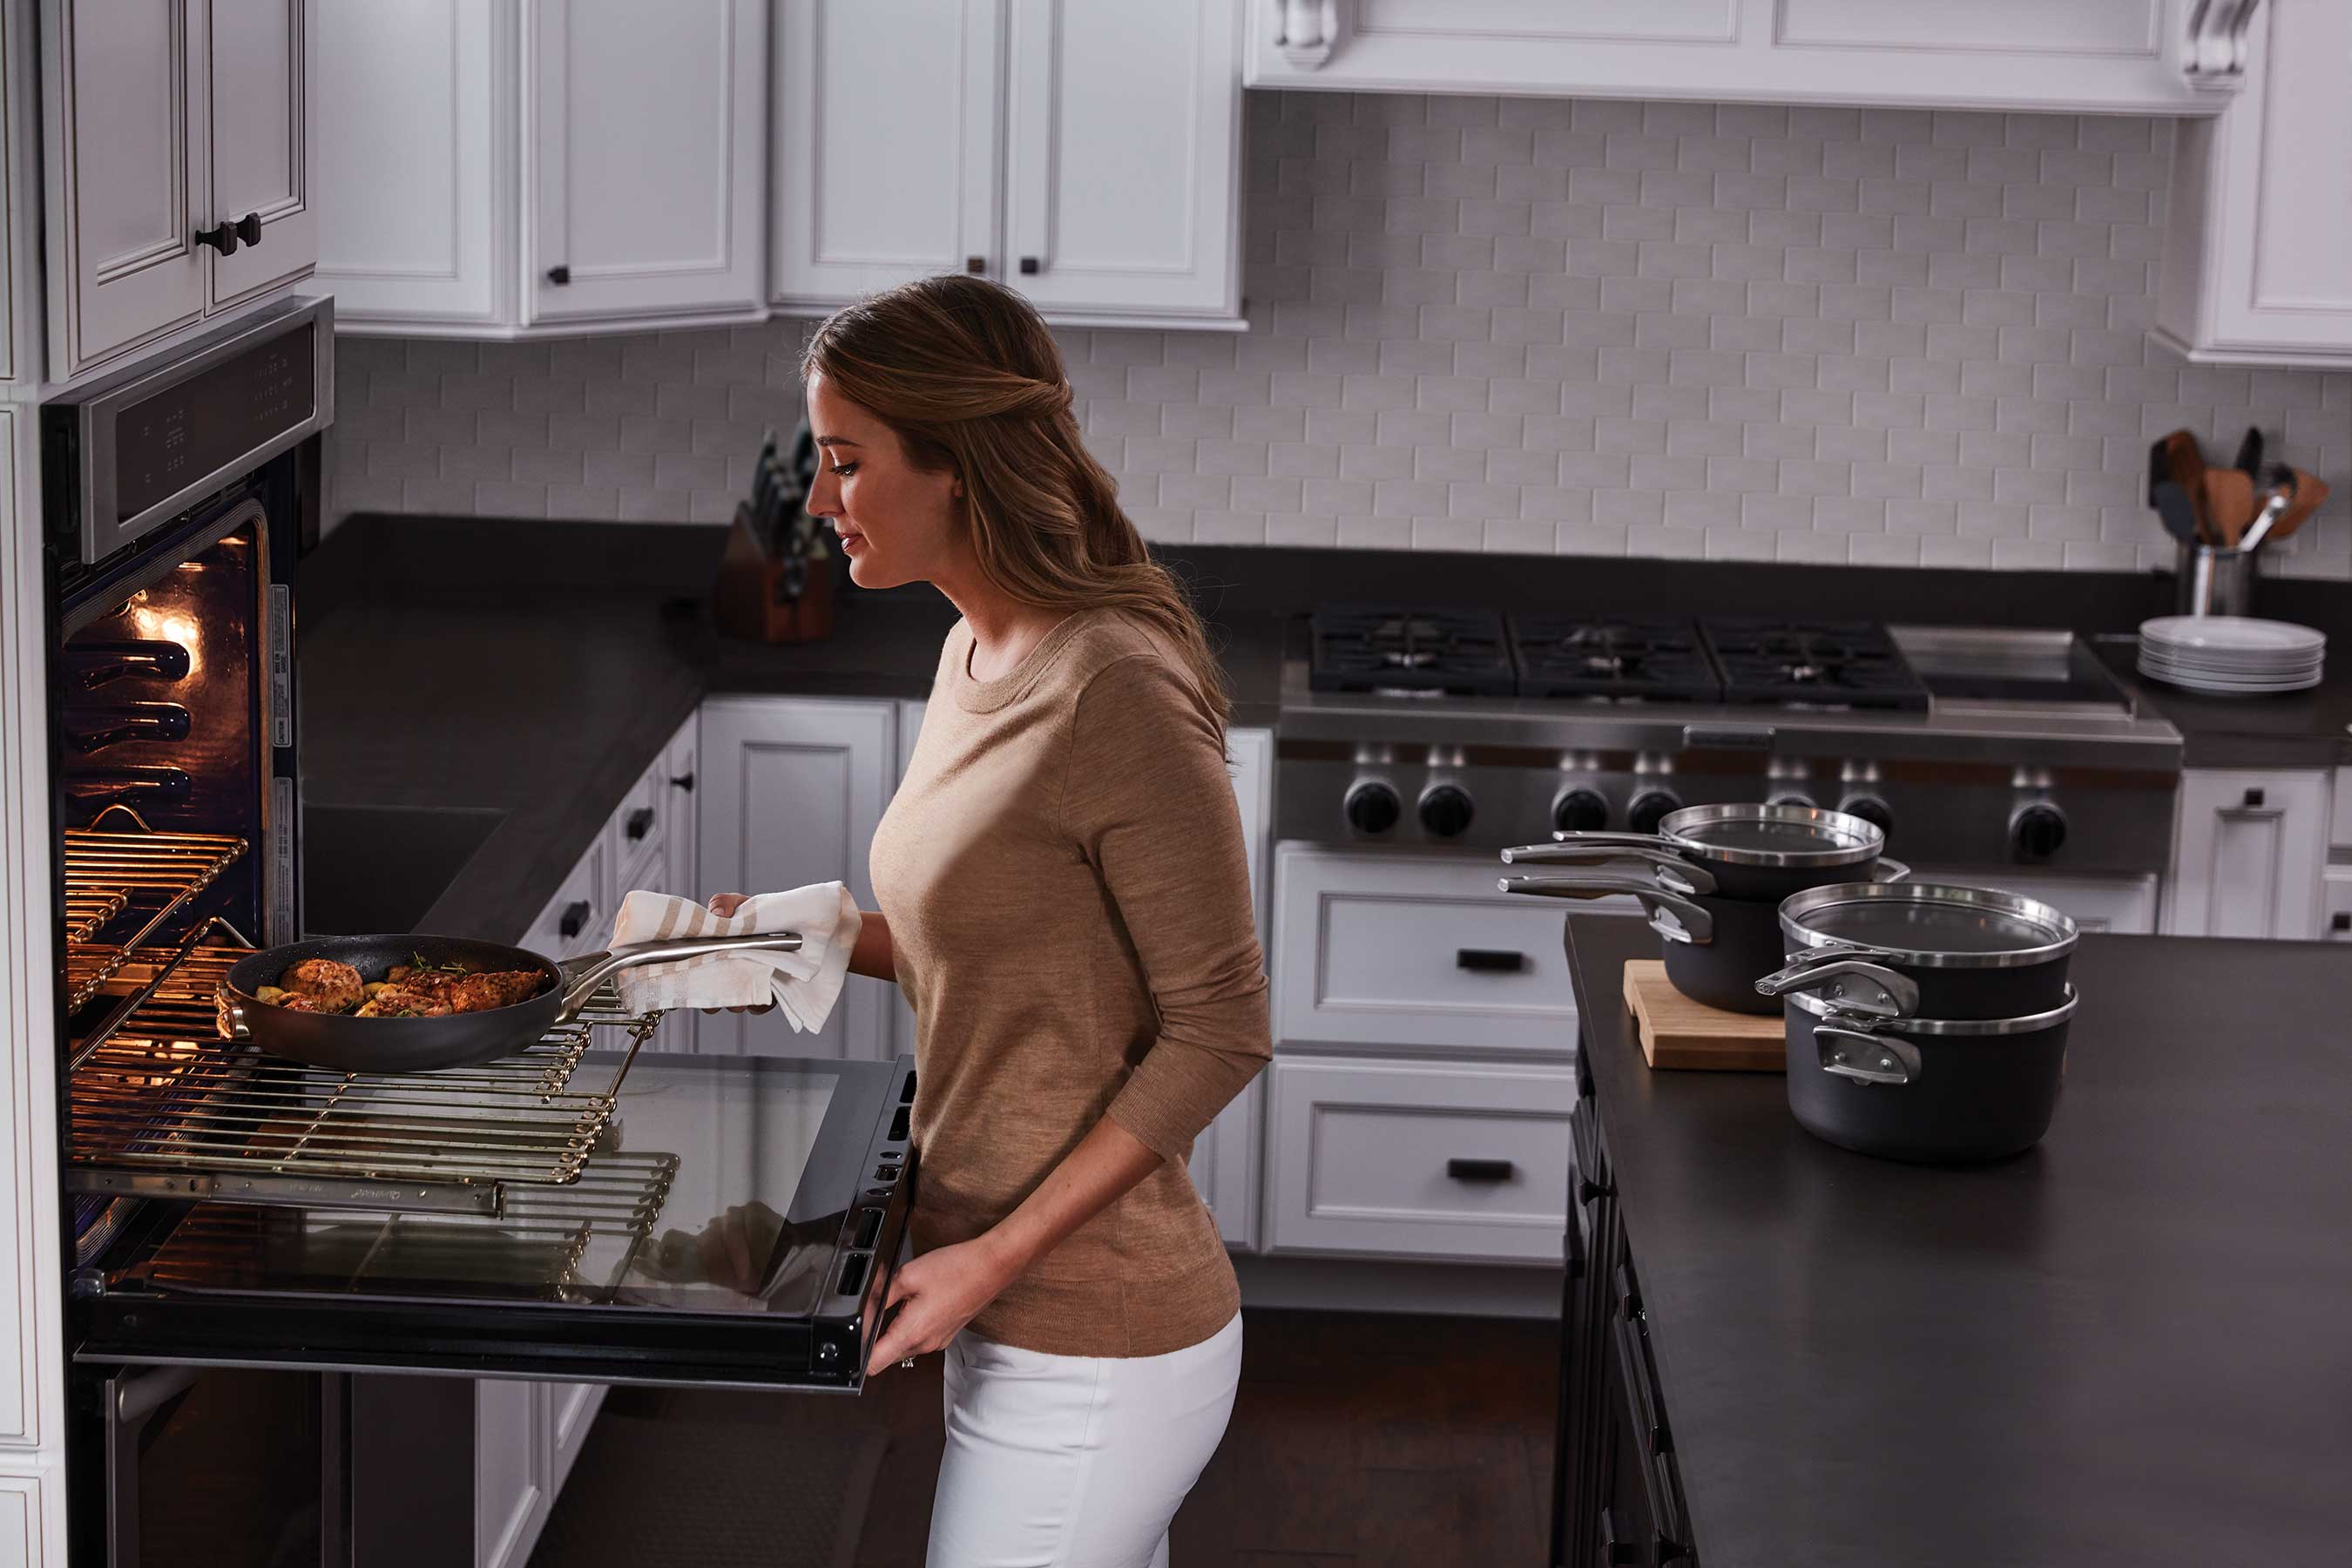 Calphalon Introduces Calphalon Premier™ Space Saving Nonstick and Stainless Steel Cookware